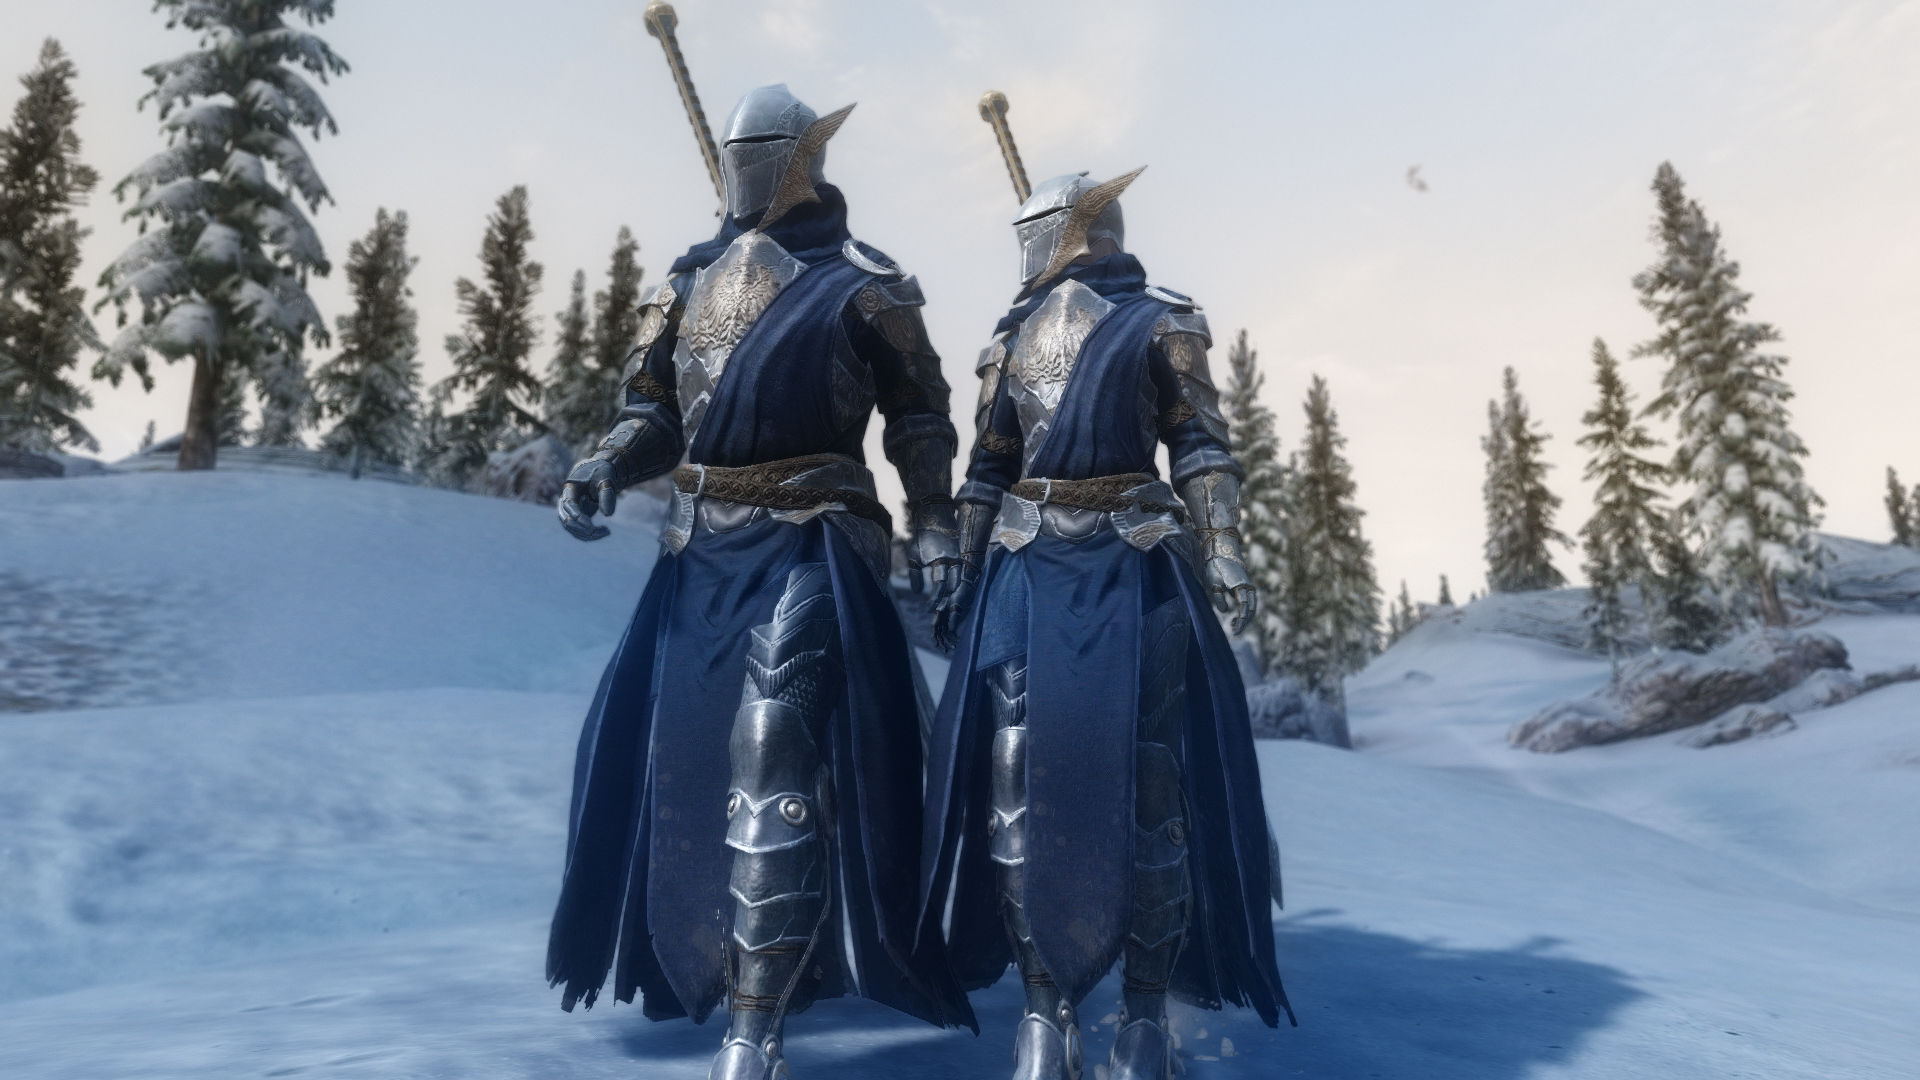 Resplendent Armor and Greatsword